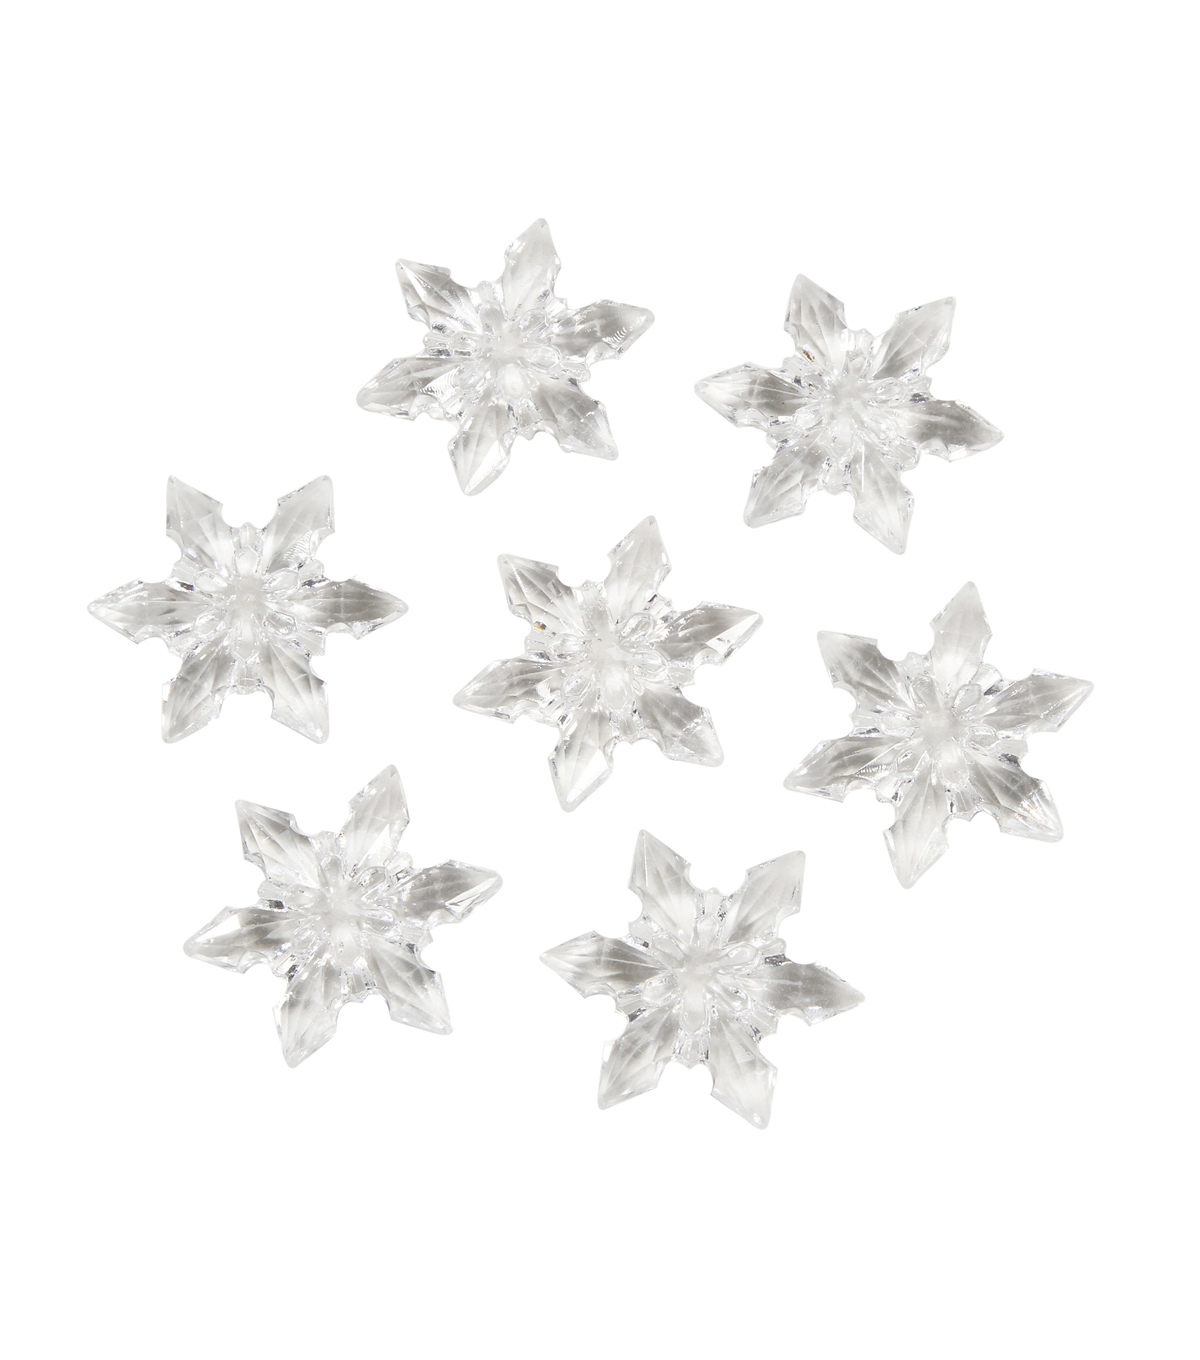 7 oz Clear Snowflakes Diamond Gems